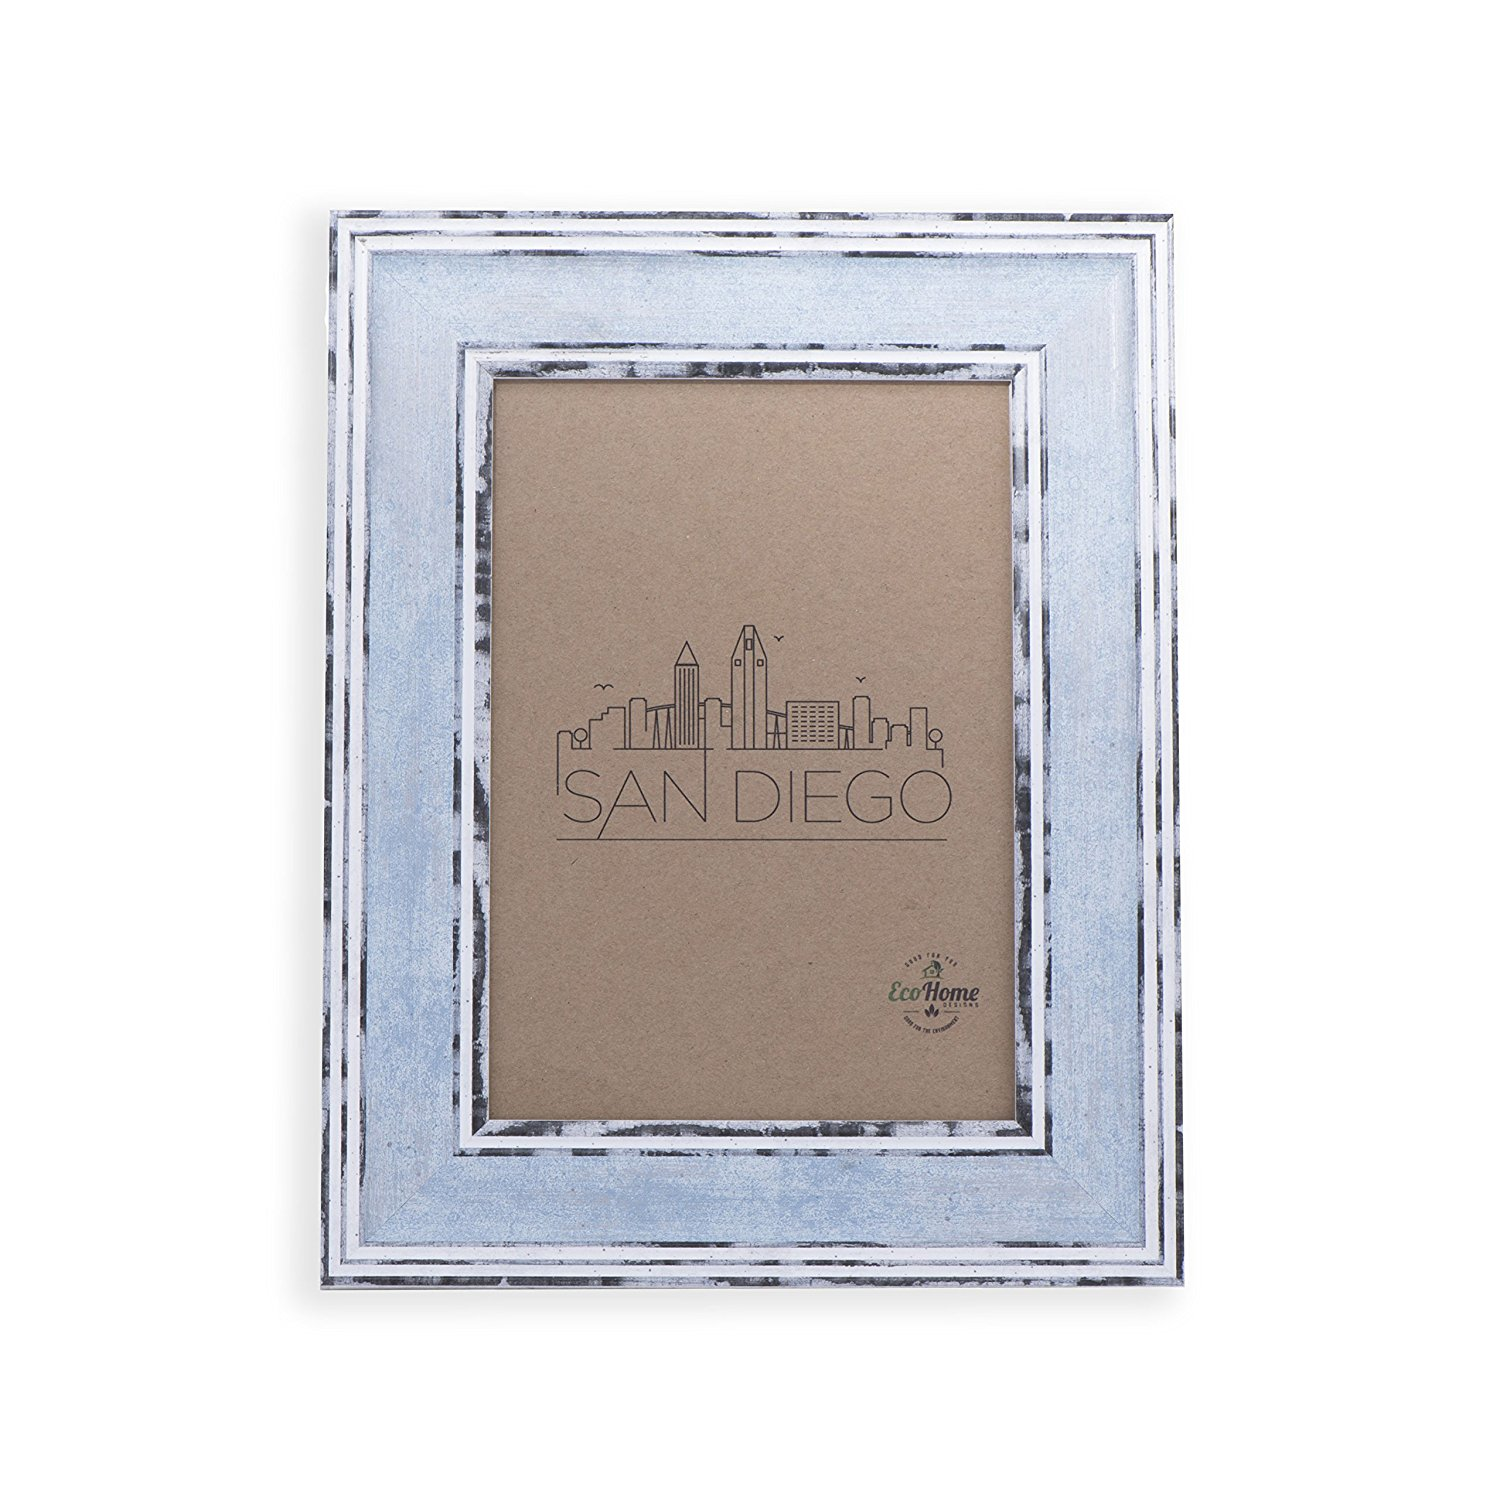 5x7 Picture Frame Distressed Blue - Mount / Desktop Display, Frames by EcoHome